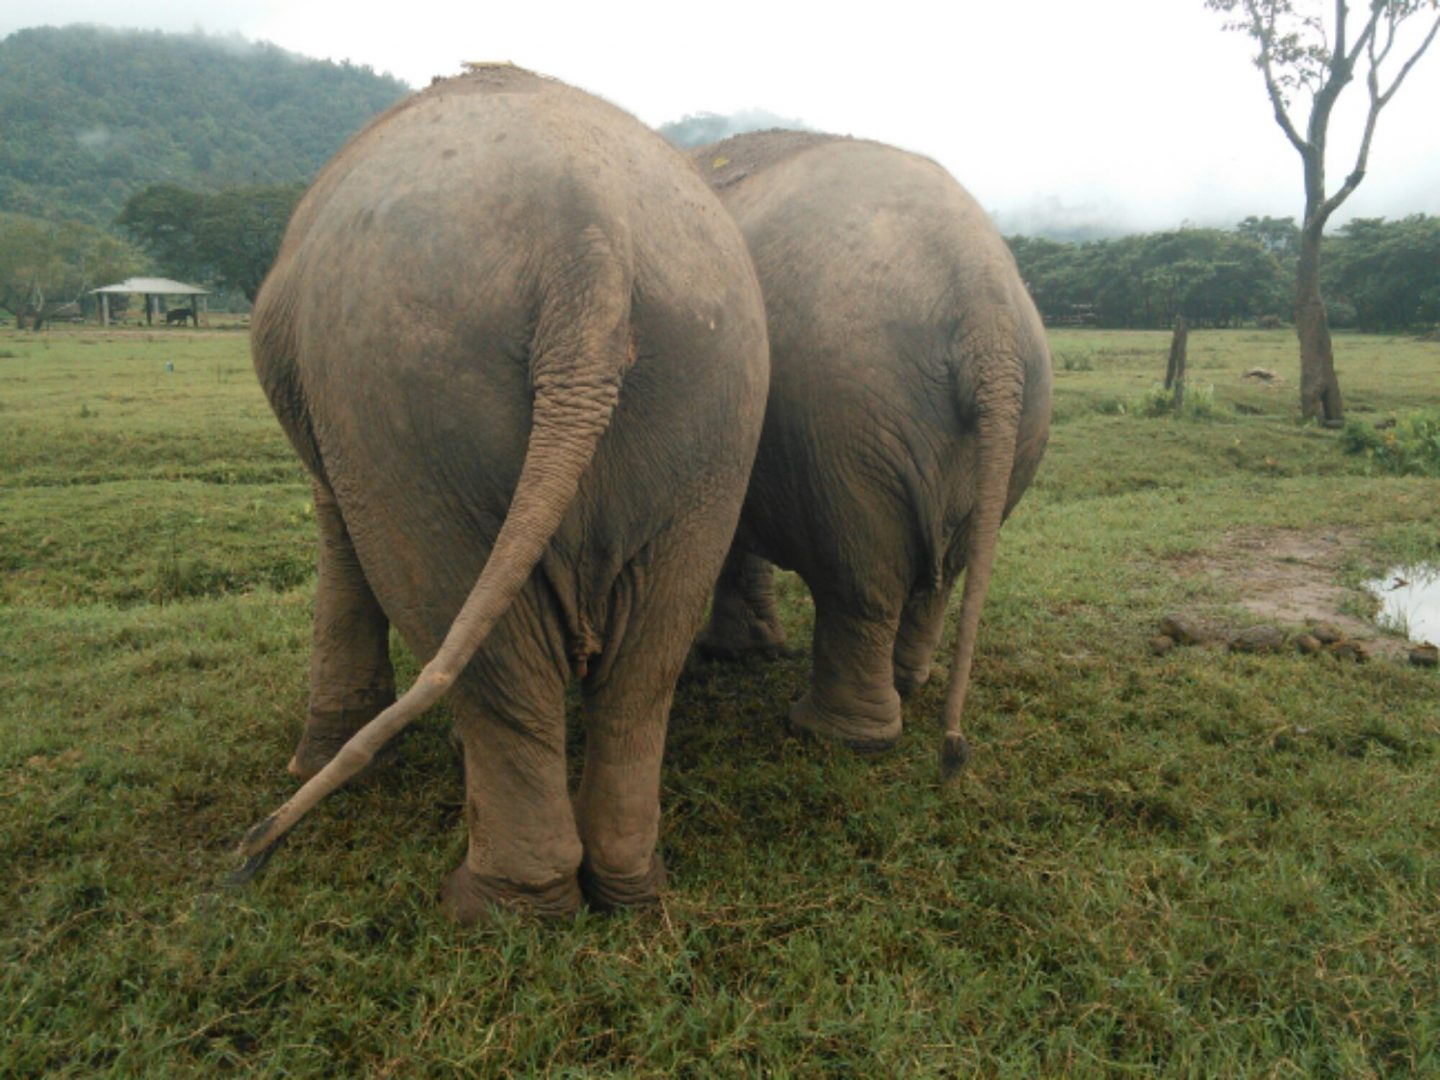 My AMAZING week at the Elephant Nature Park (ENP).